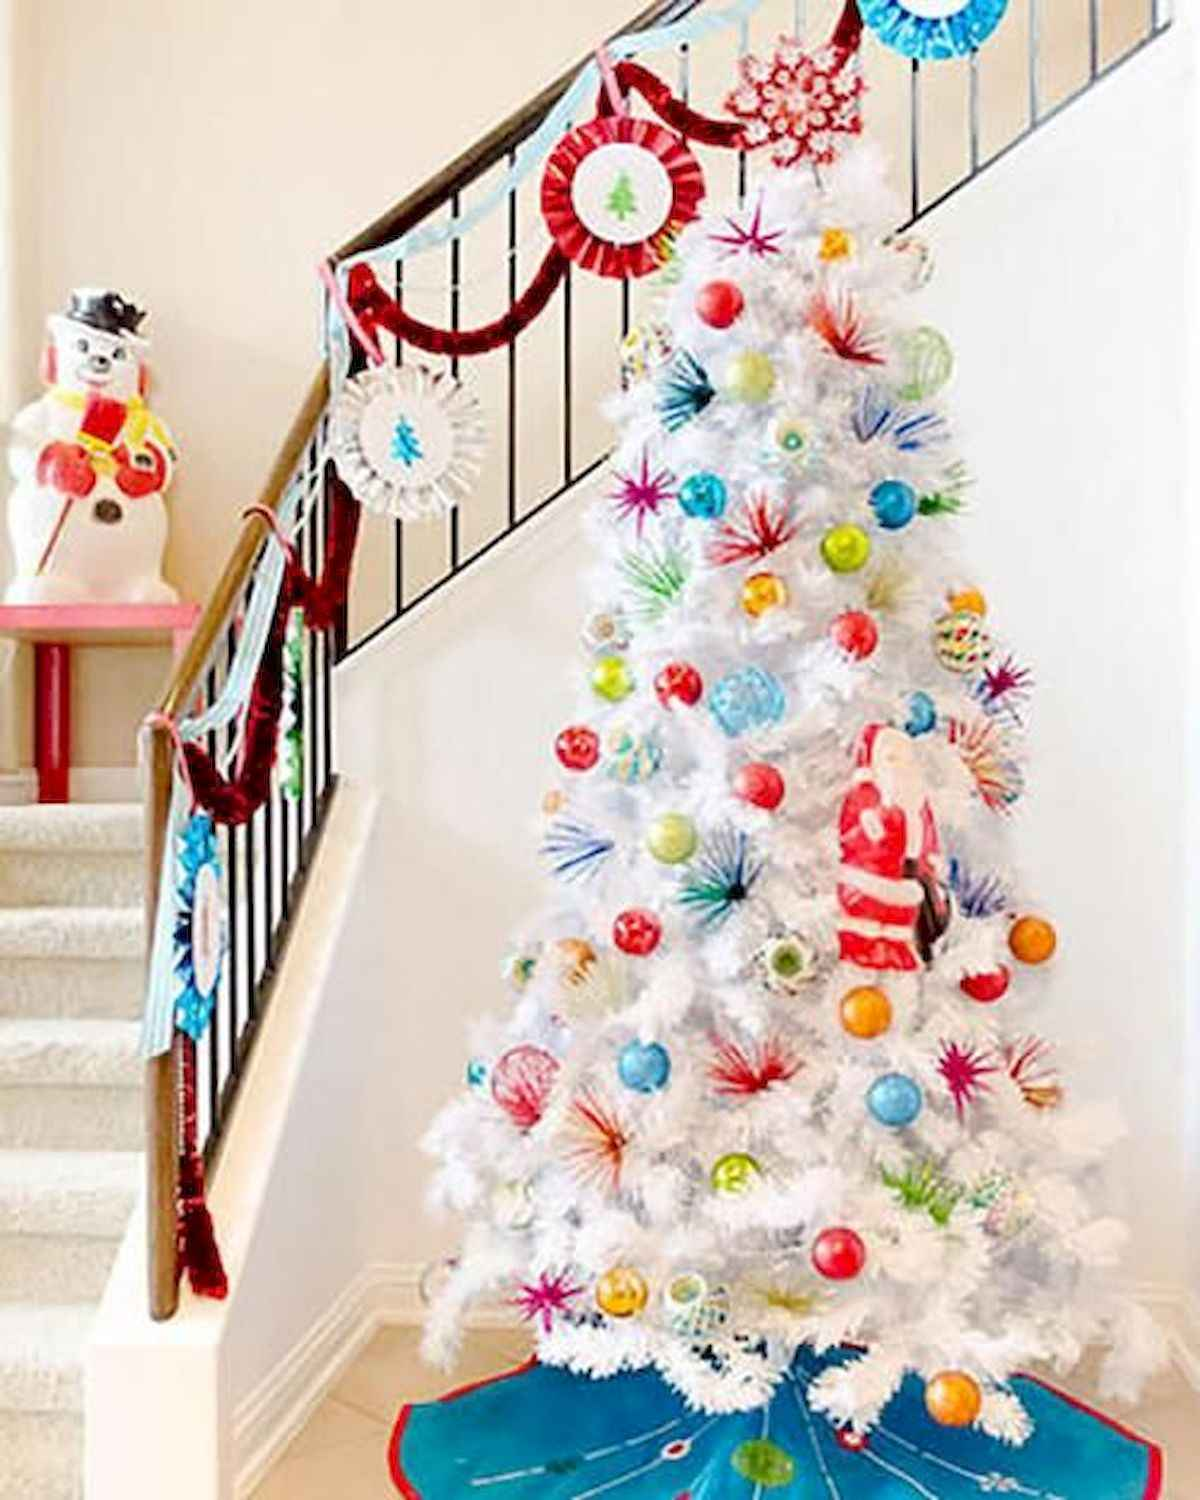 60 awesome christmas tree decorations ideas (31)